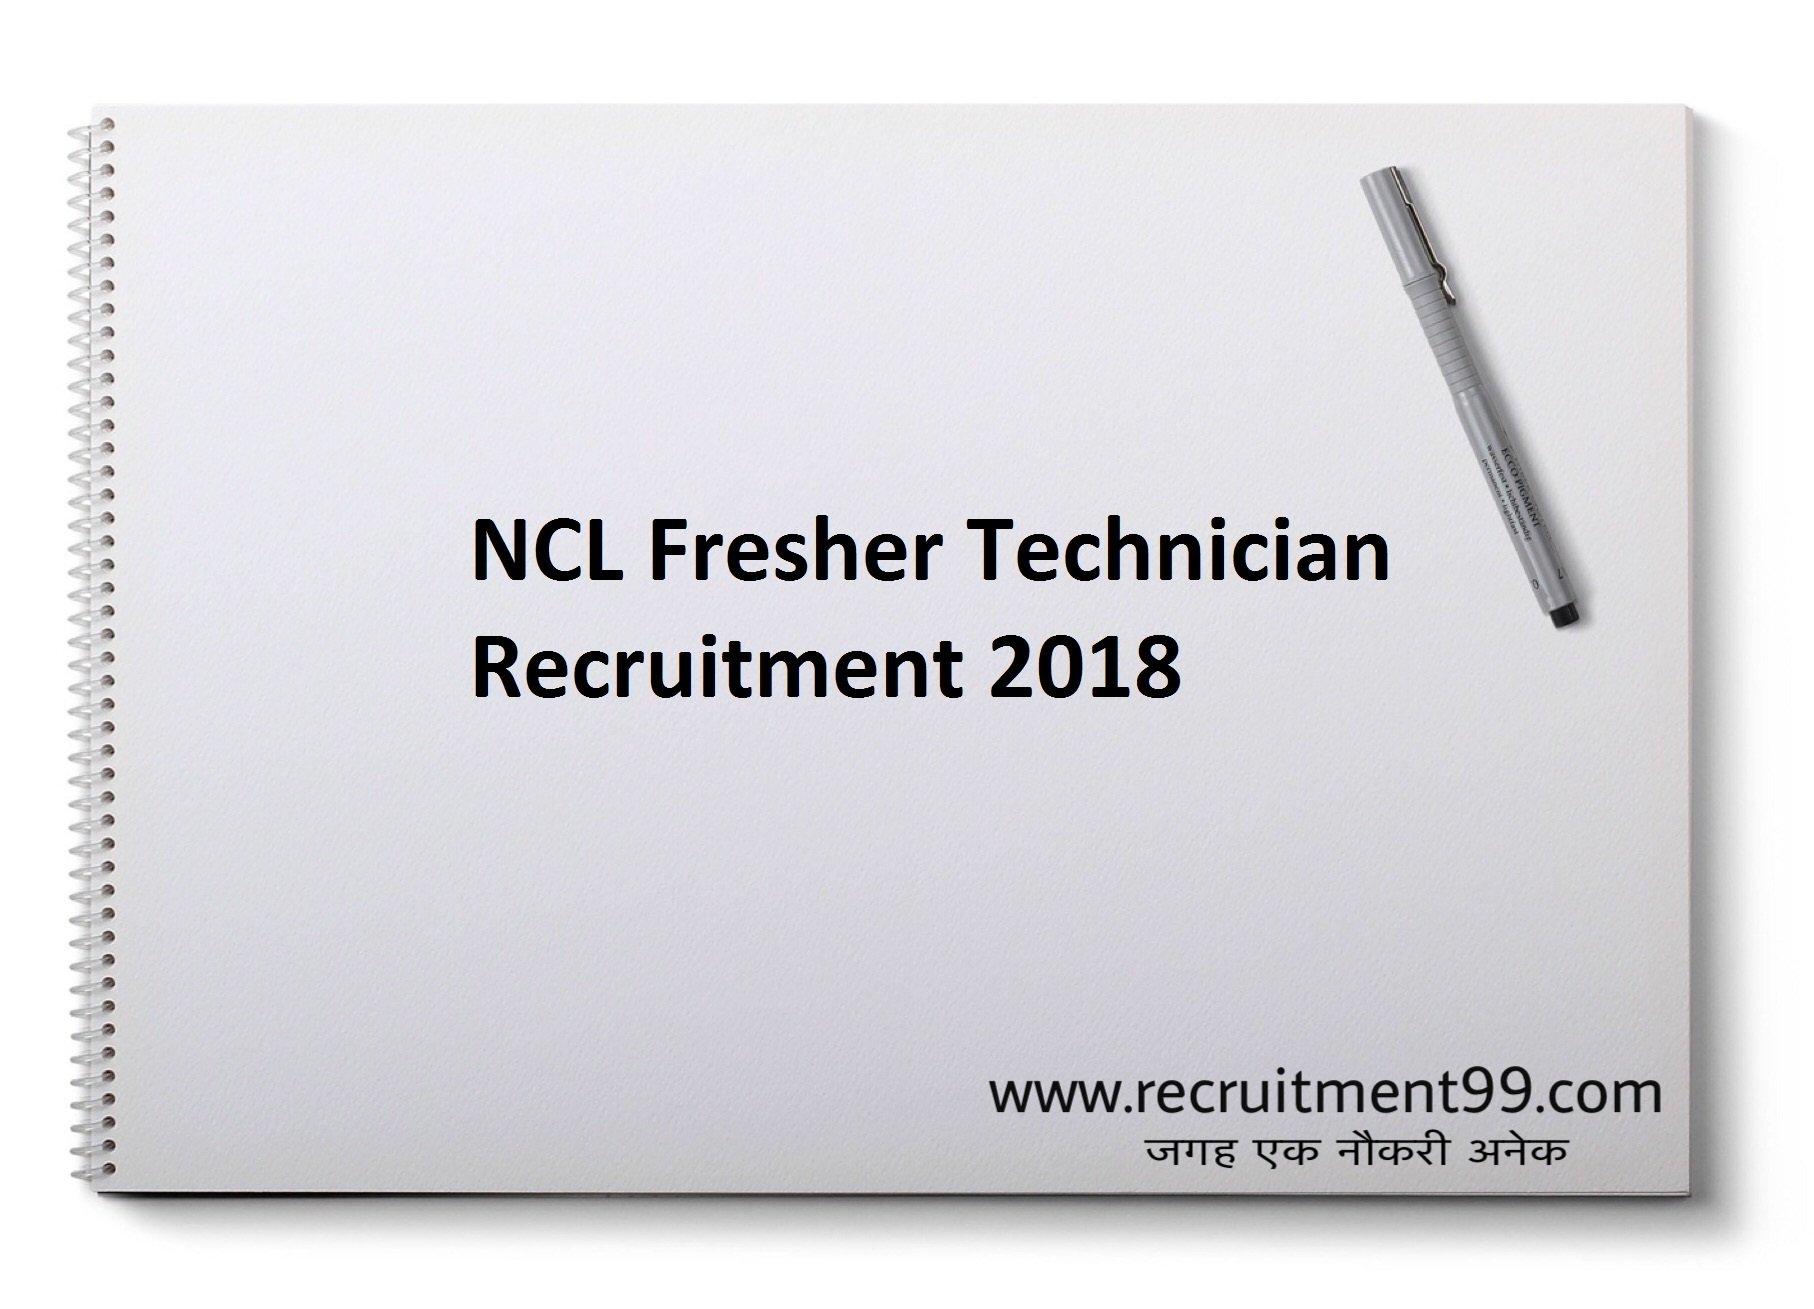 NCL Fresher Technician Recruitment Admit Card Result 2018